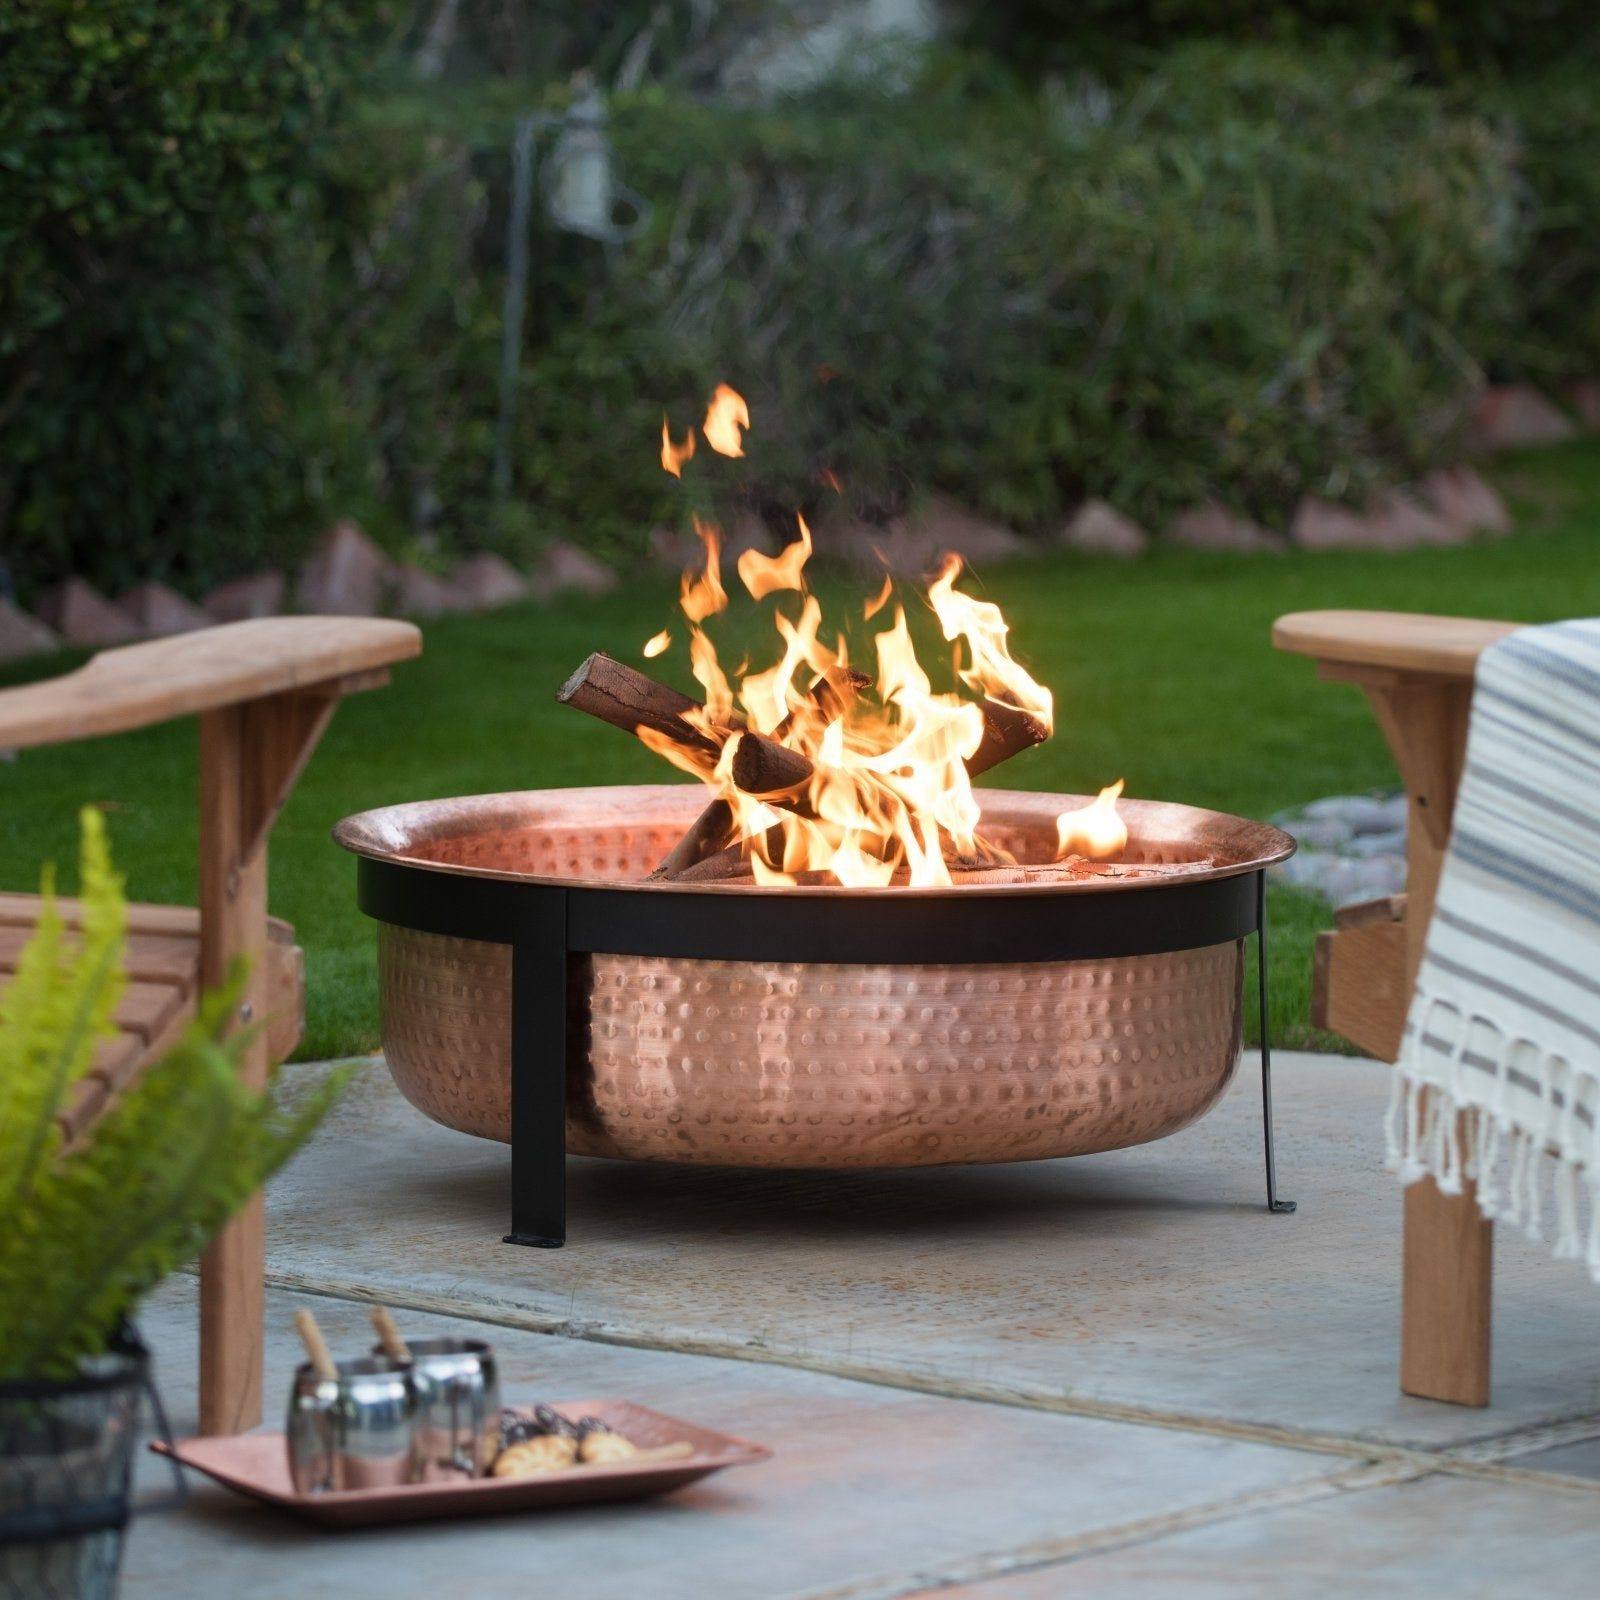 A Gorgeous Hammered Copper Fire Pit So You Can Make Marshmallow Roasting Seem Like A Michelin Star Kind Of Meal Outdoor Fire Pit Outside Fire Pits Wood Burning Fire Pit